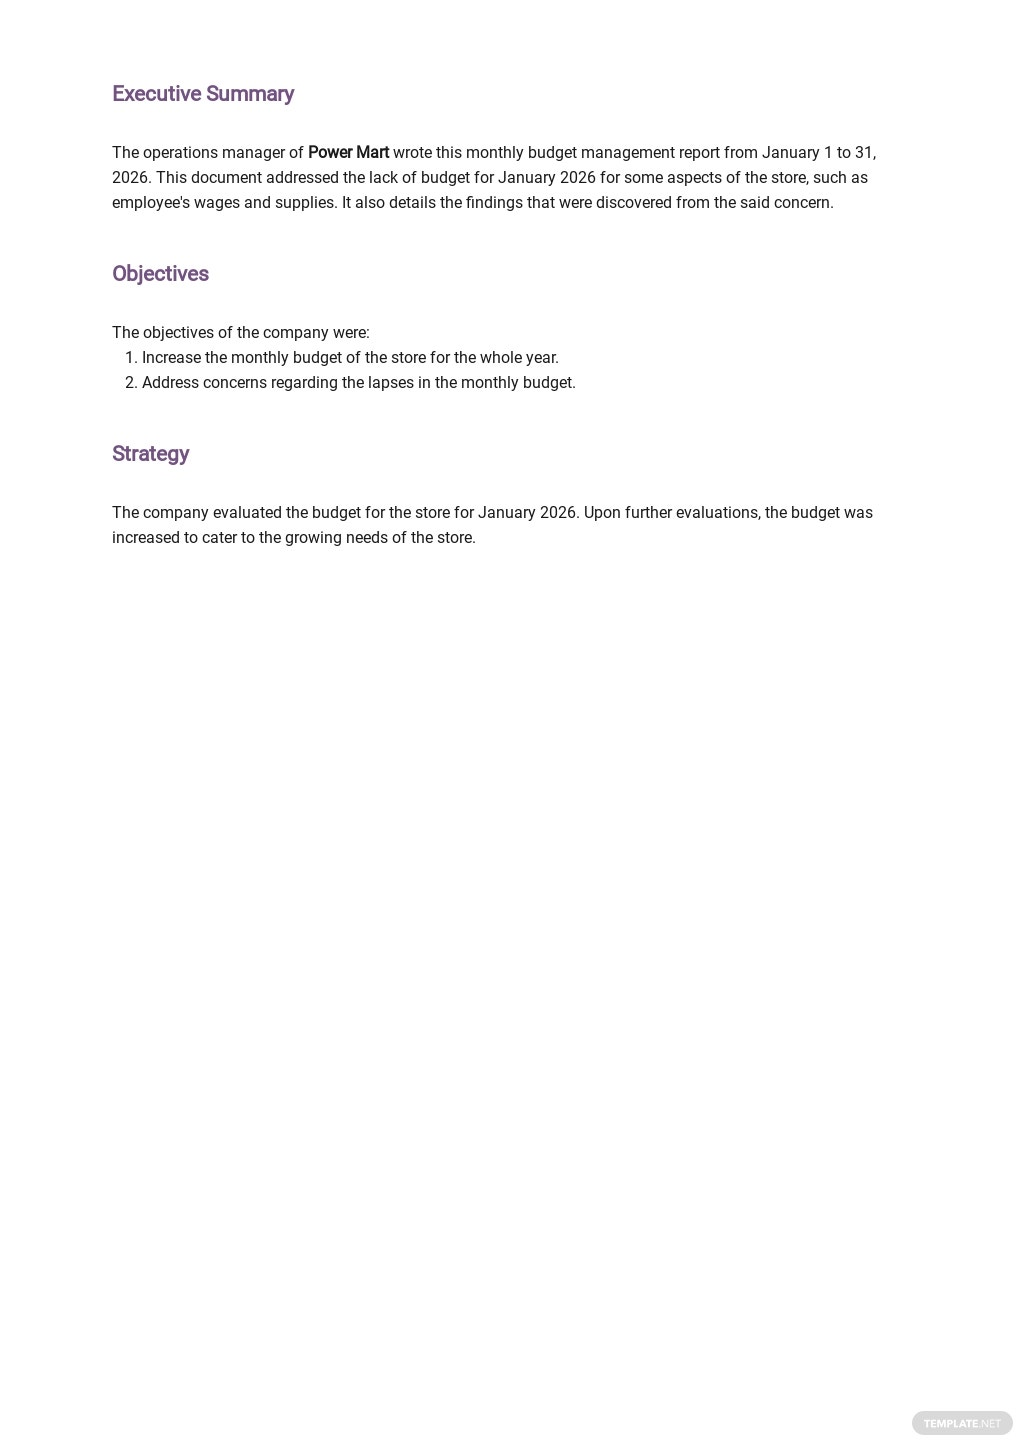 Free Monthly Budget Management Report Template 1.jpe